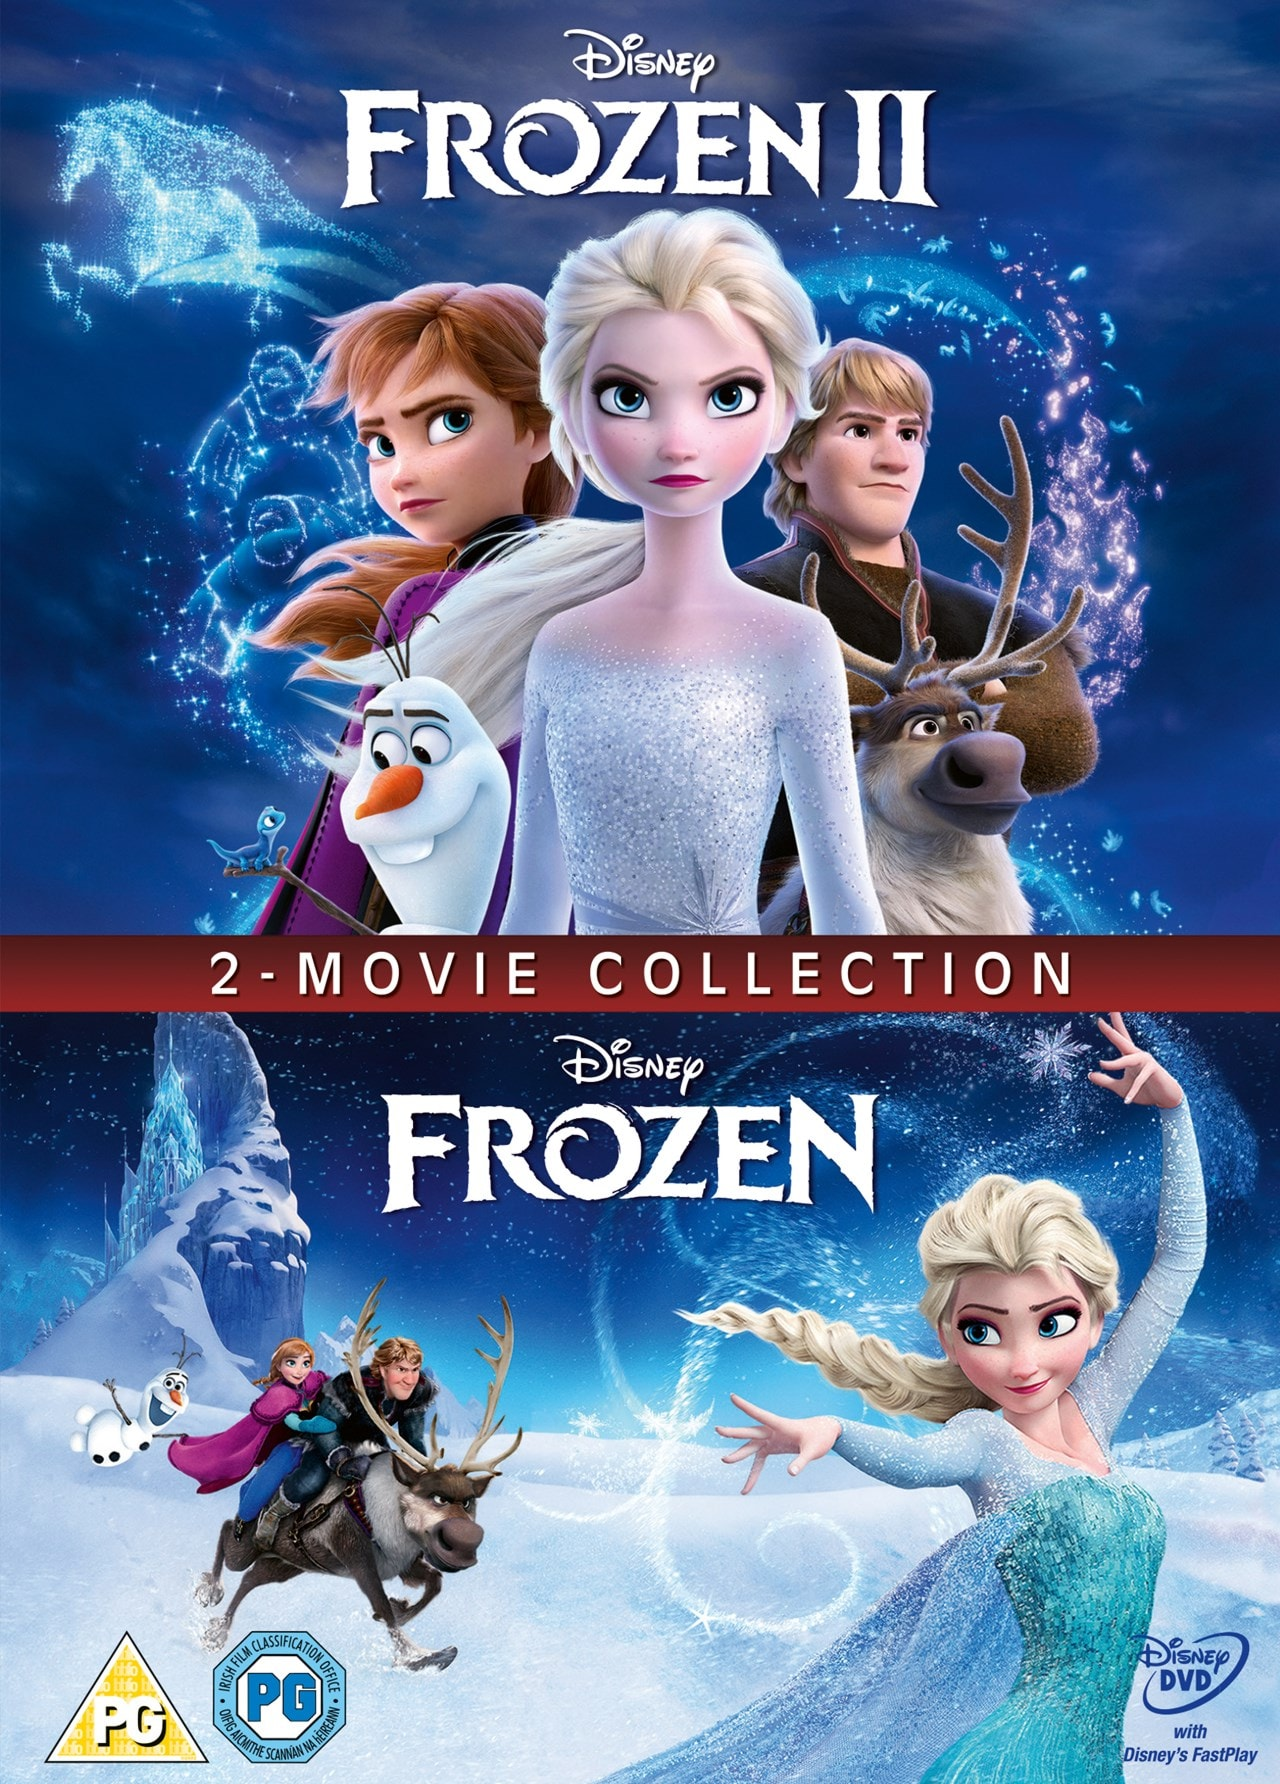 Frozen: 2-movie Collection - 1